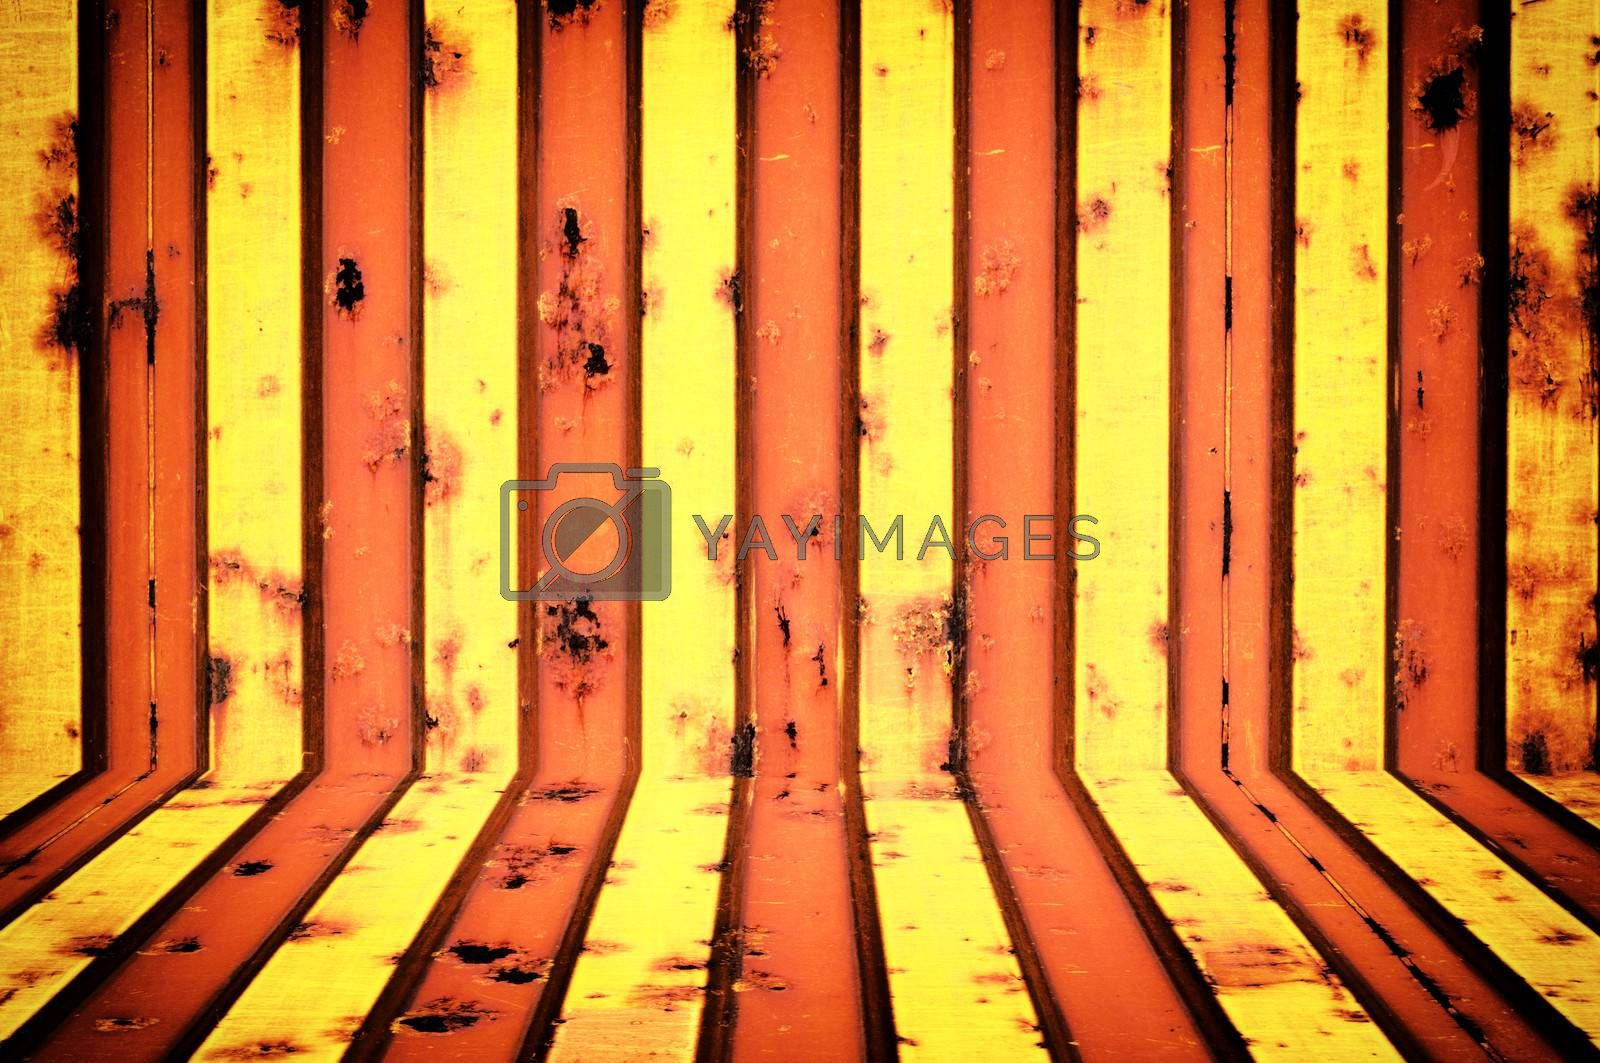 Yellow and rusty metal texture